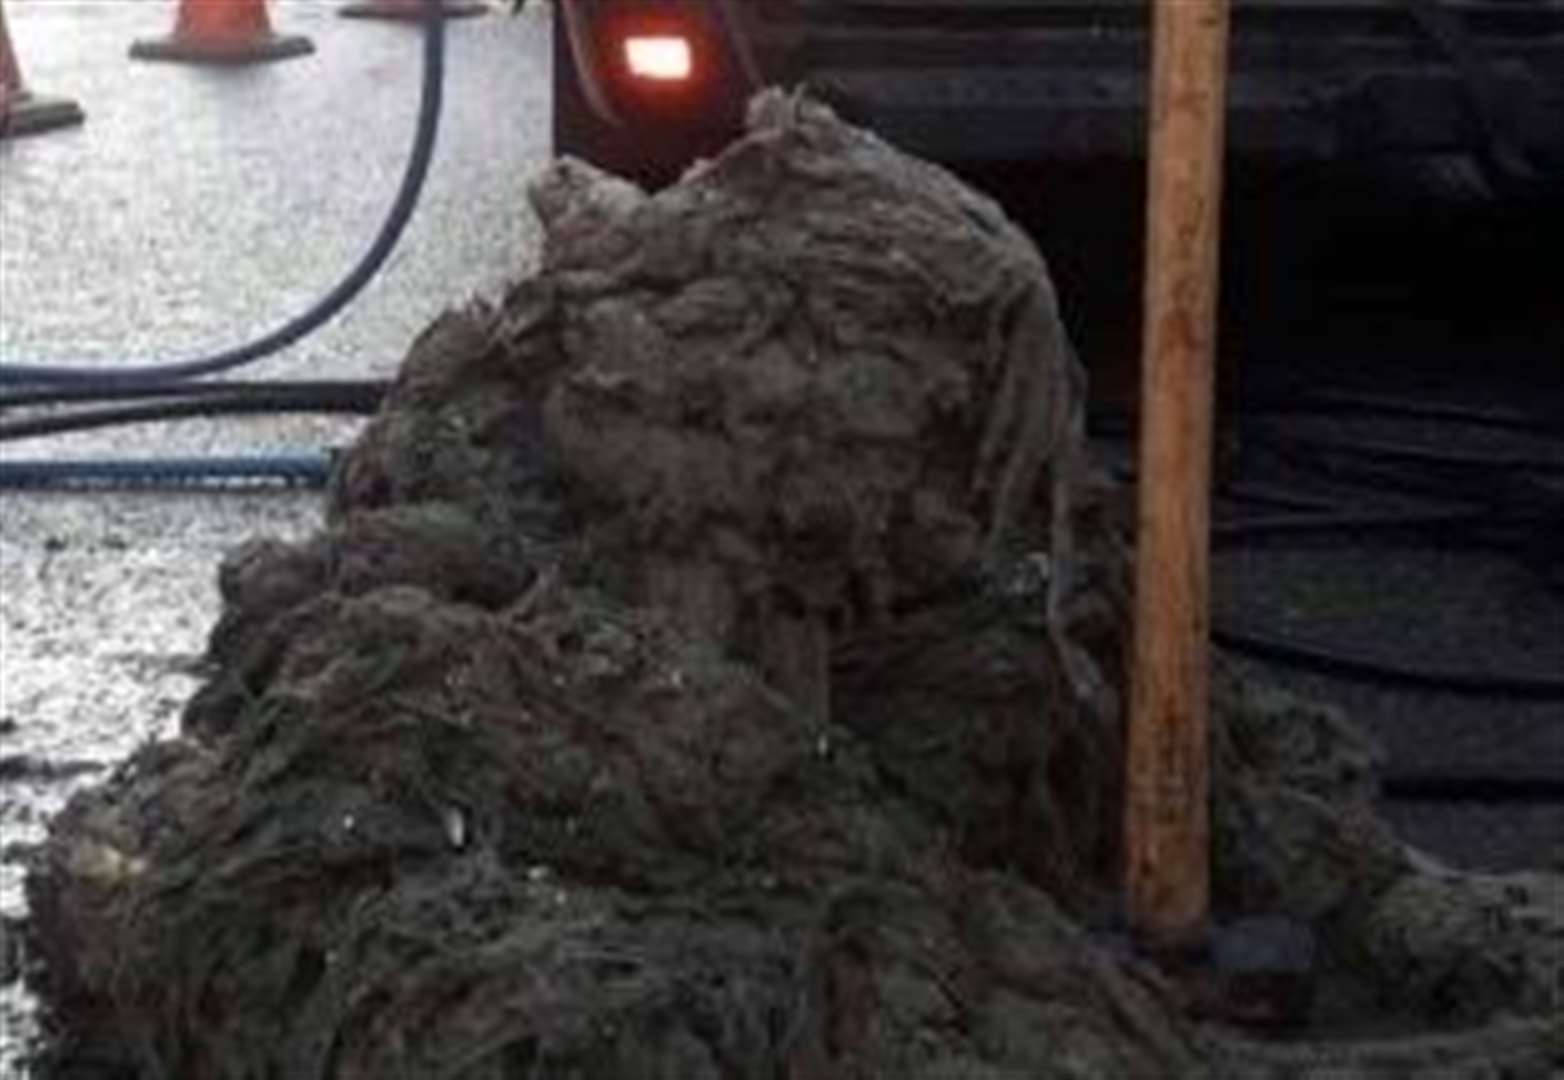 Wet wipes 'fat berg monster' removed from Stamford drains